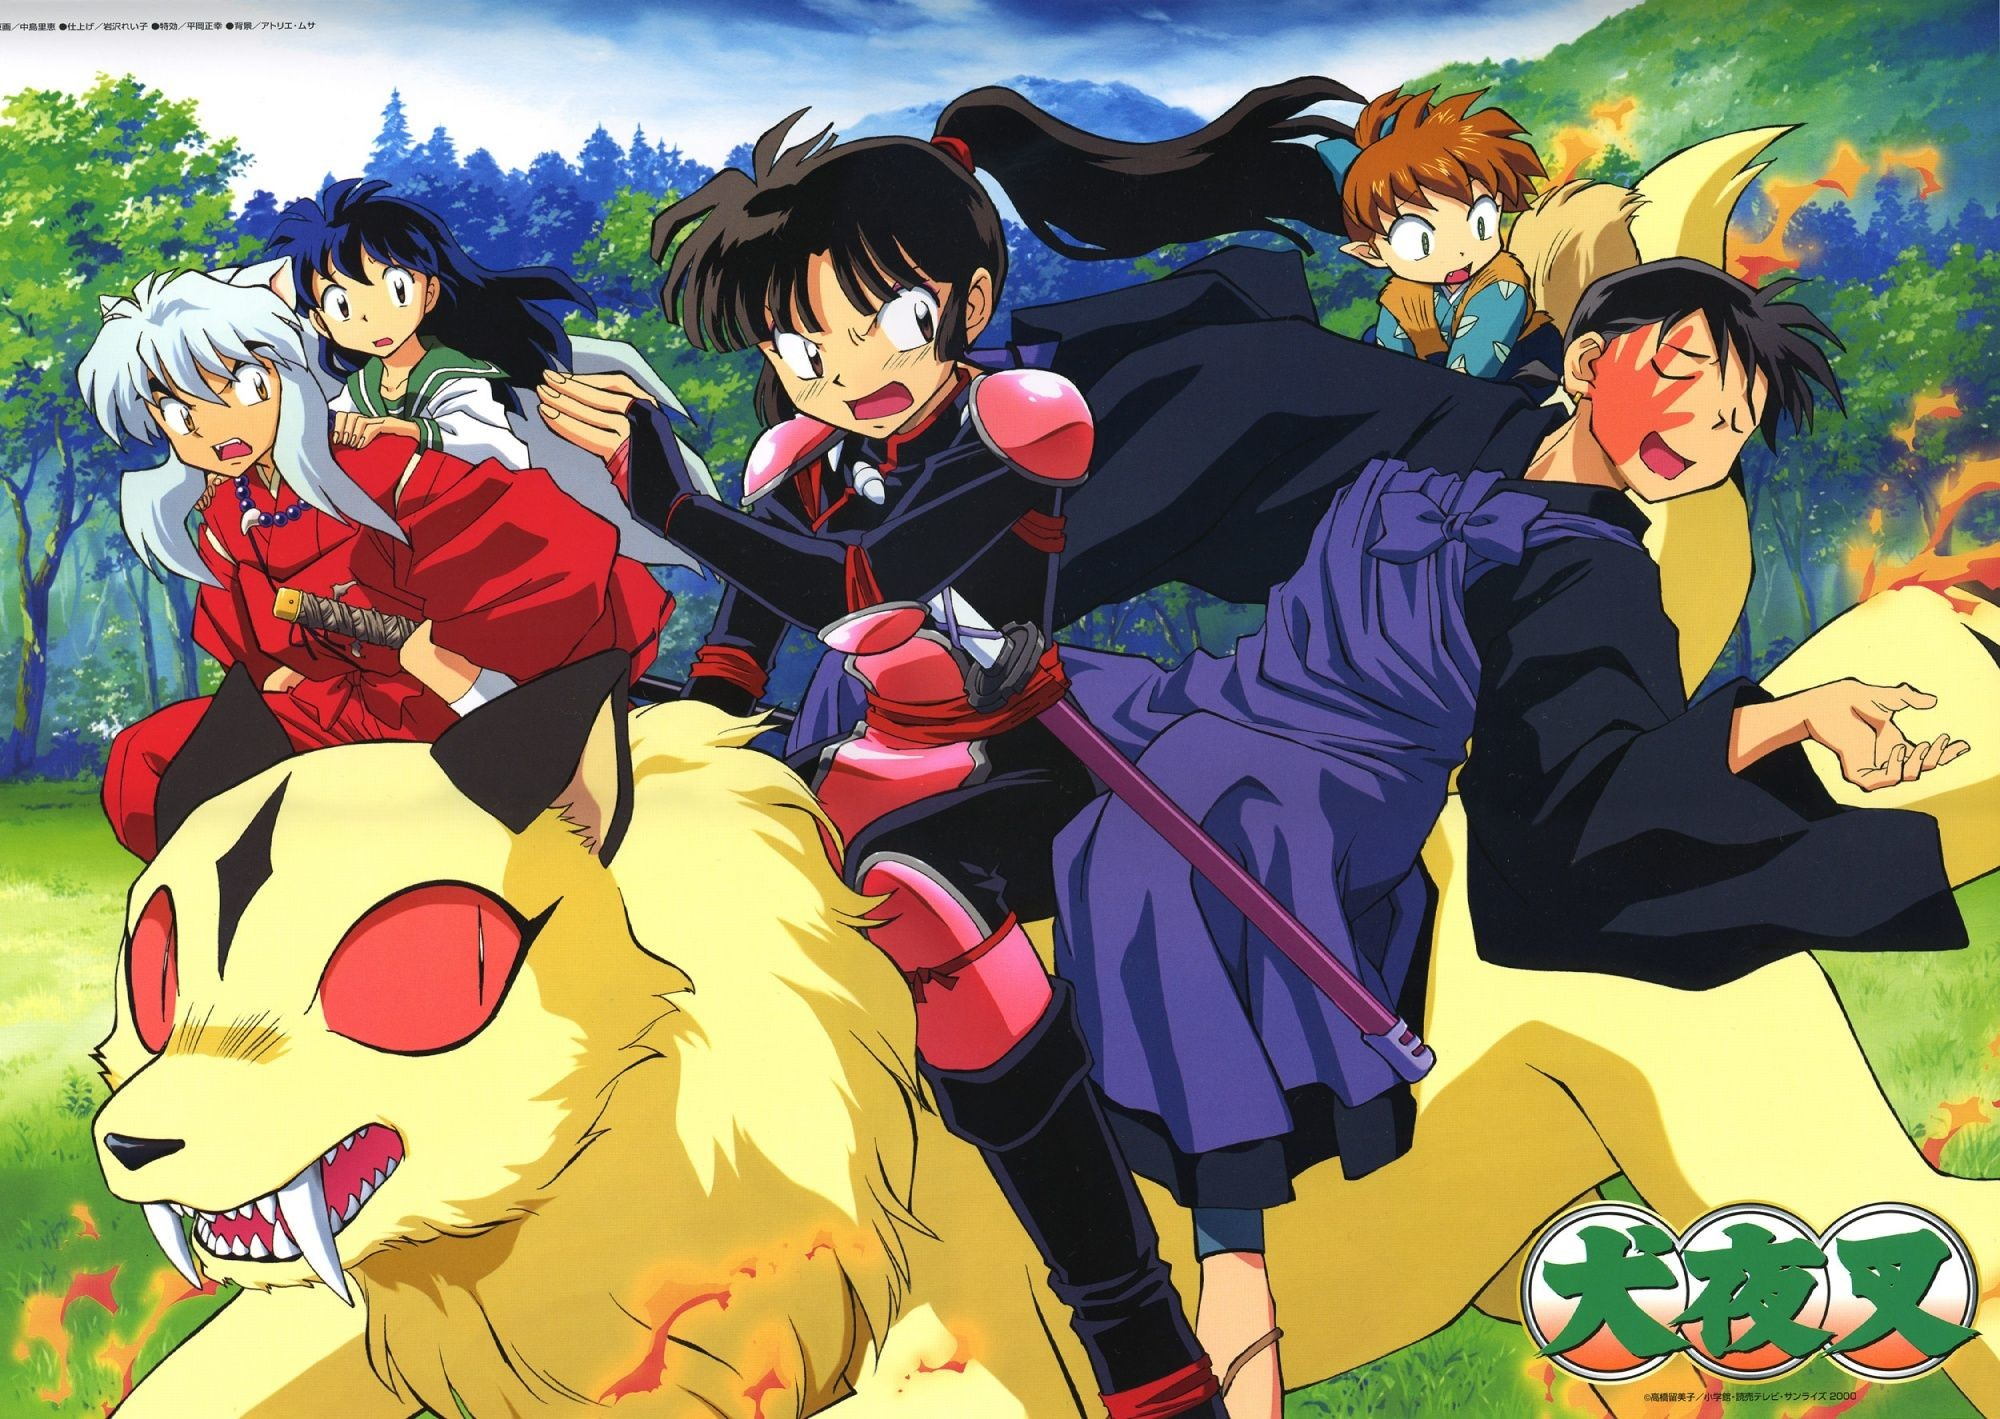 2000x1419 InuYasha Computer Wallpapers, Desktop Backgrounds Desktop Background